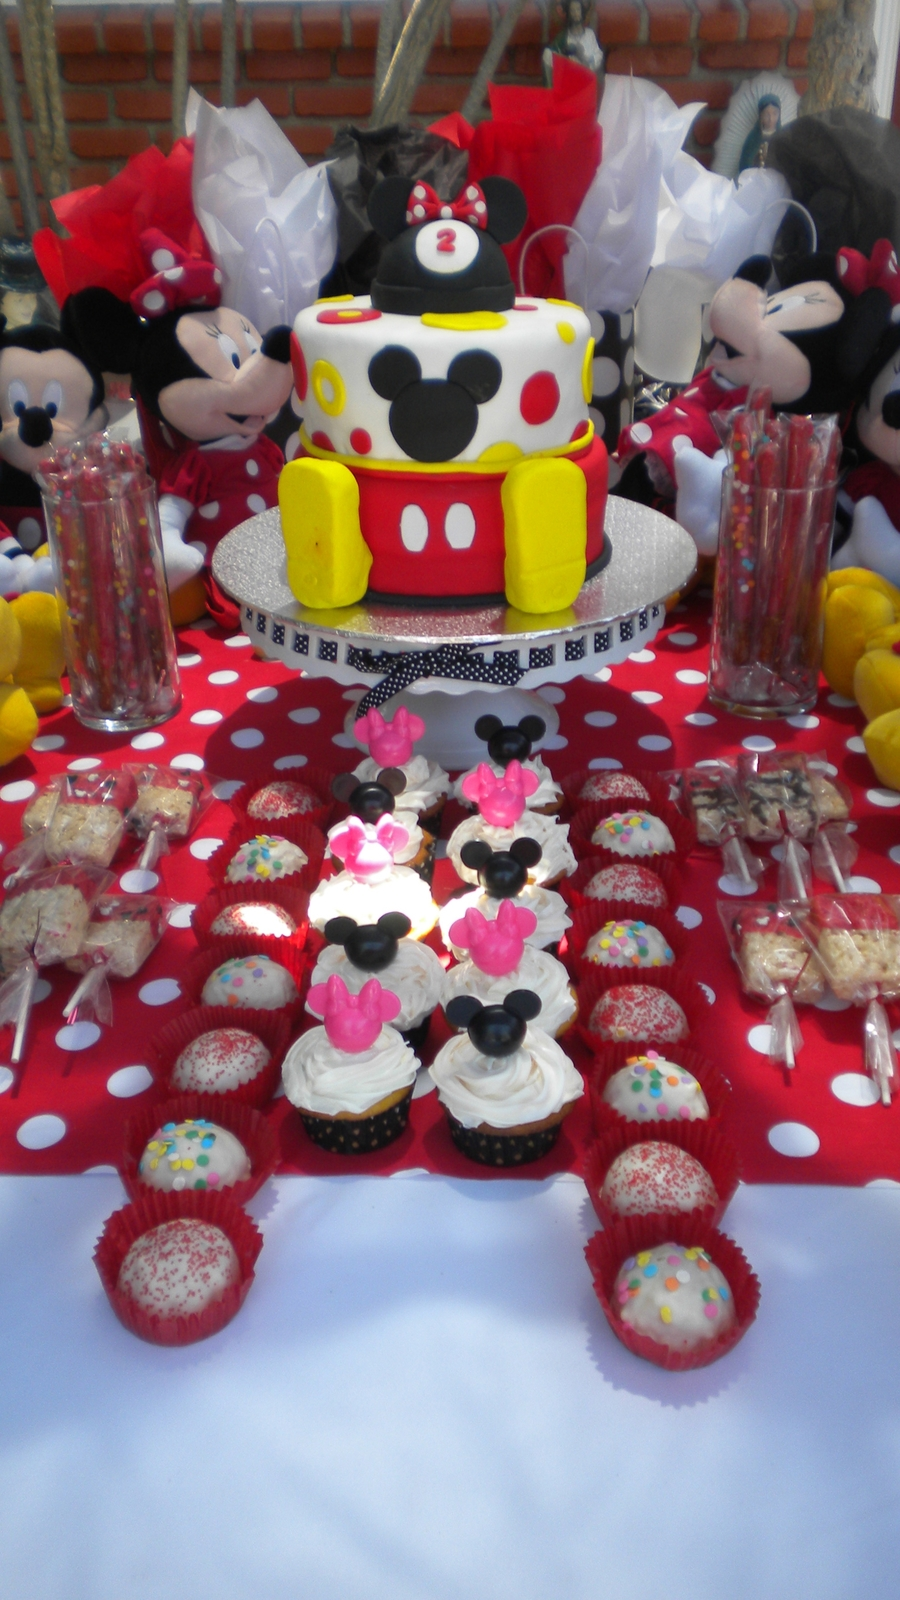 Minnie Mouse Cake And Dessert Bar on Cake Central